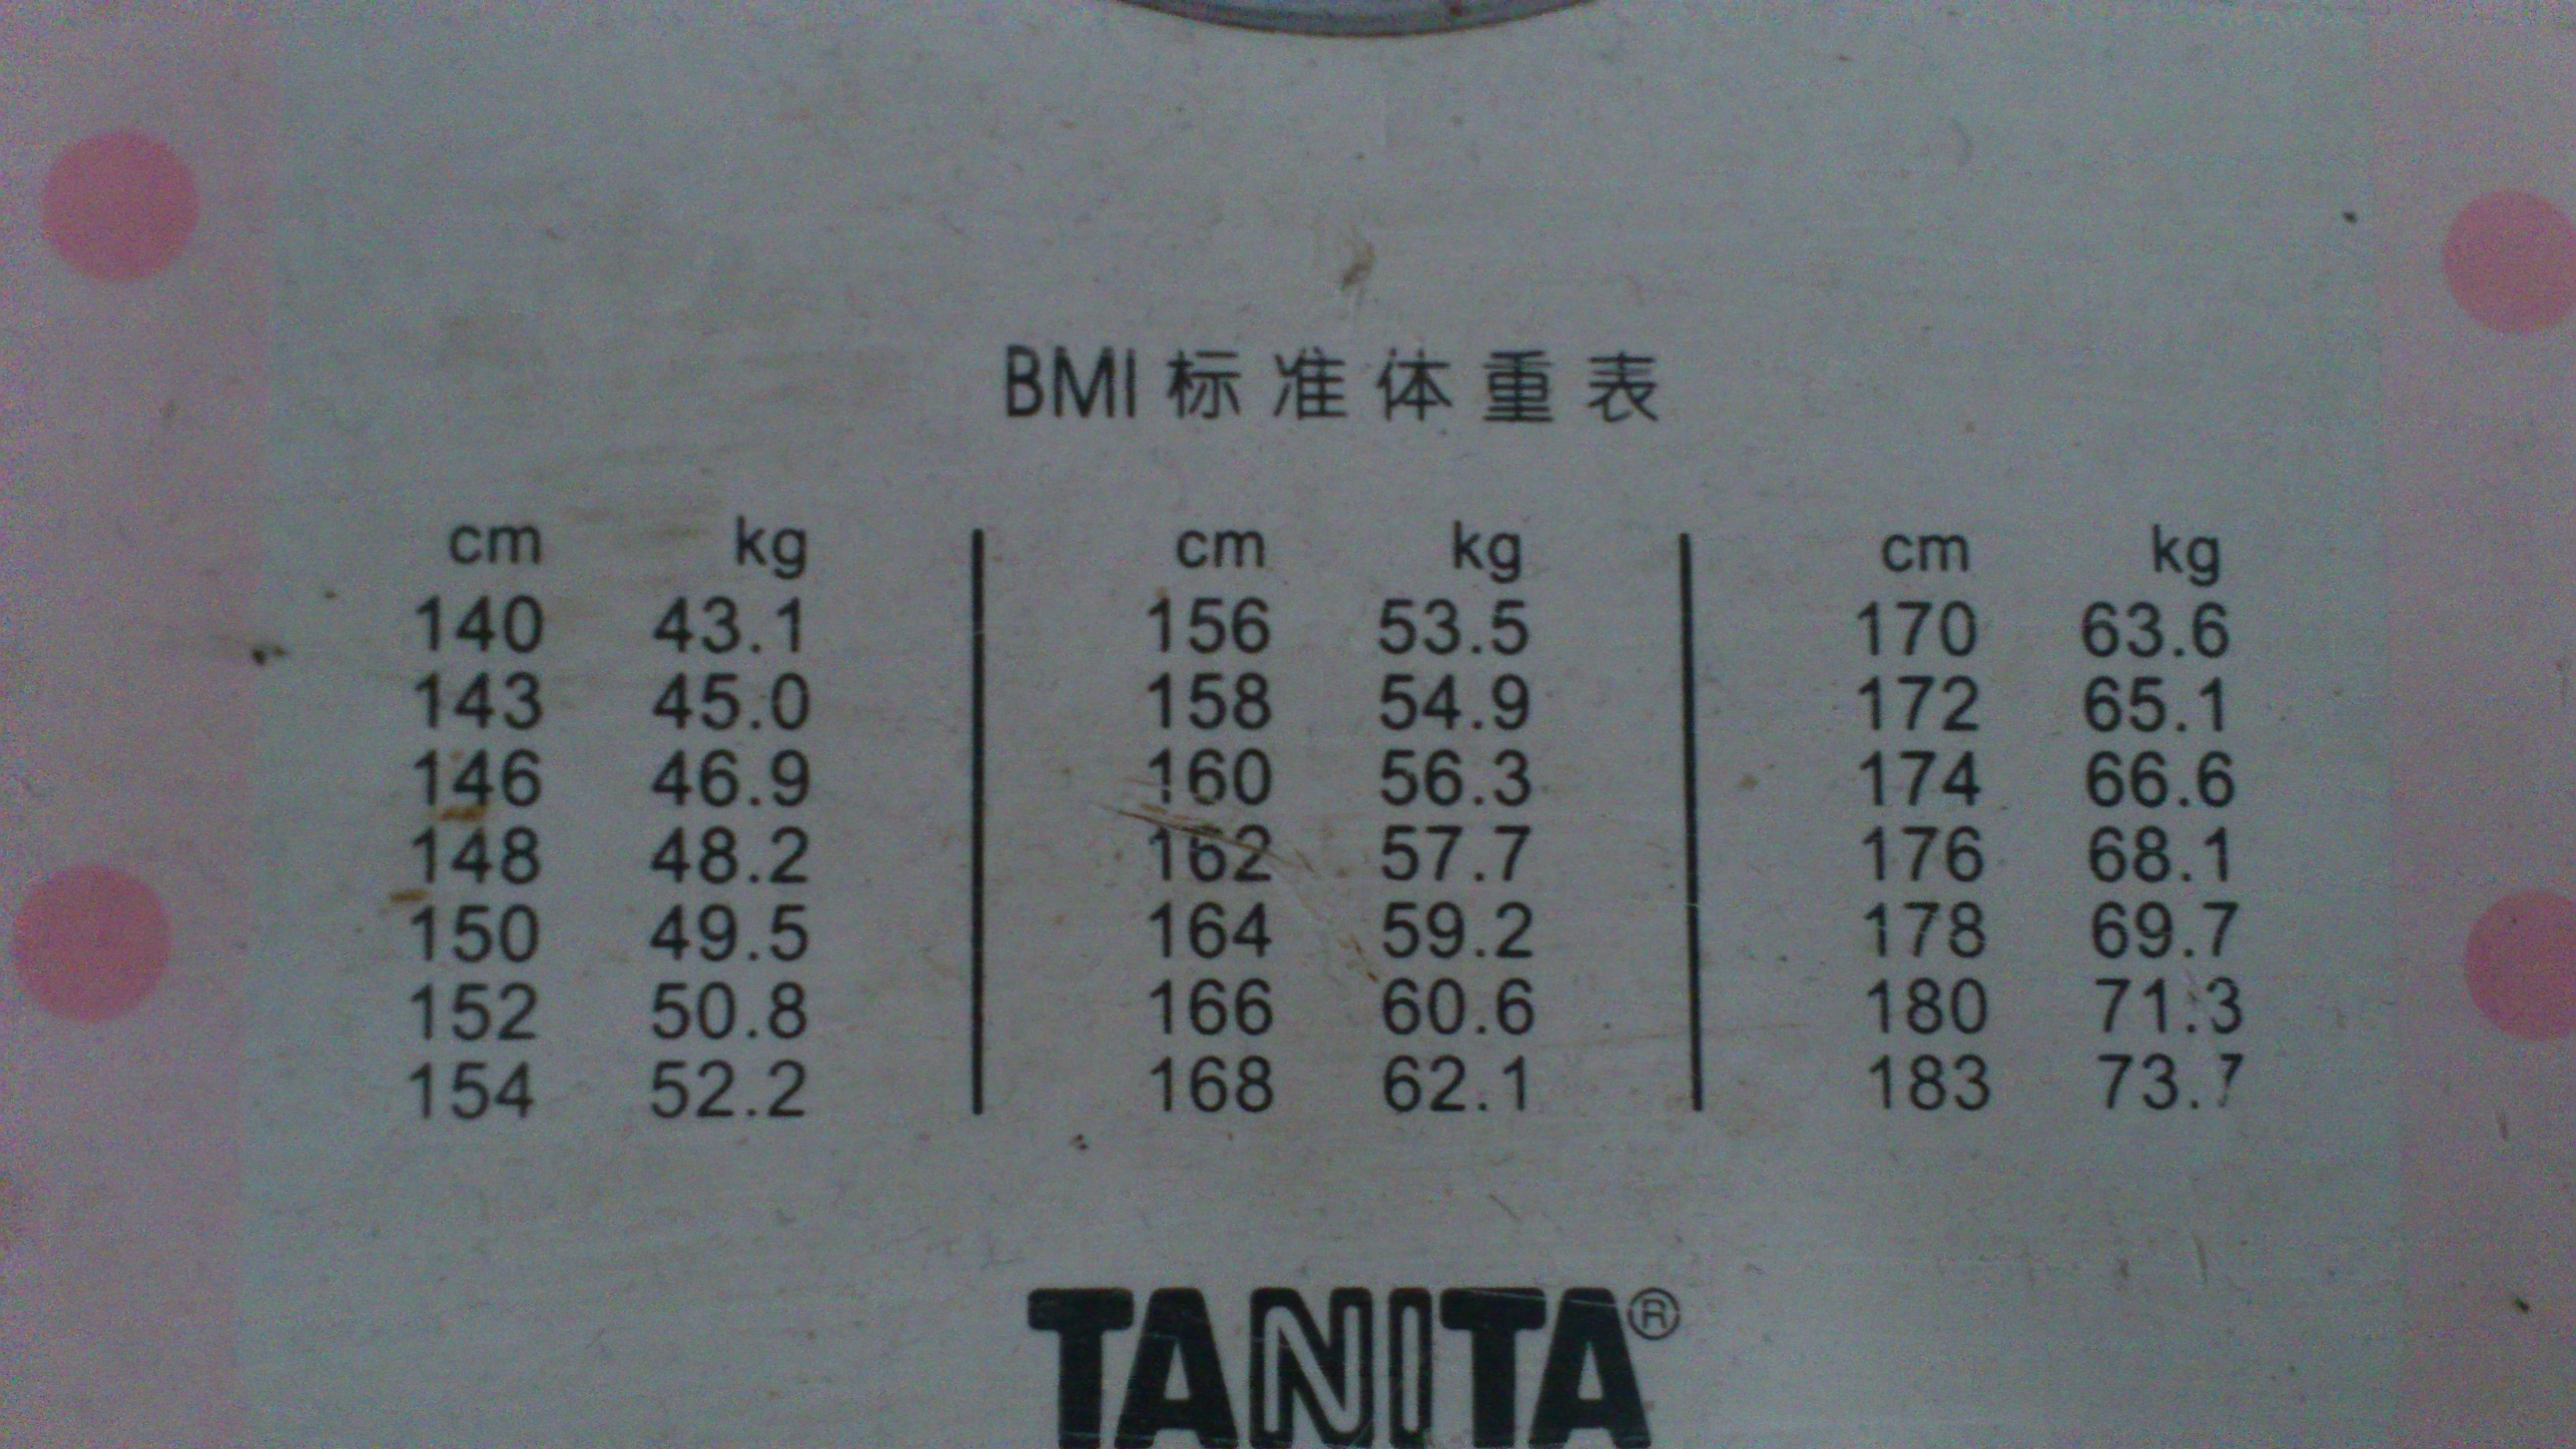 Your healthy weight does this bmi chart scare you midnight bmi weight standard nvjuhfo Gallery